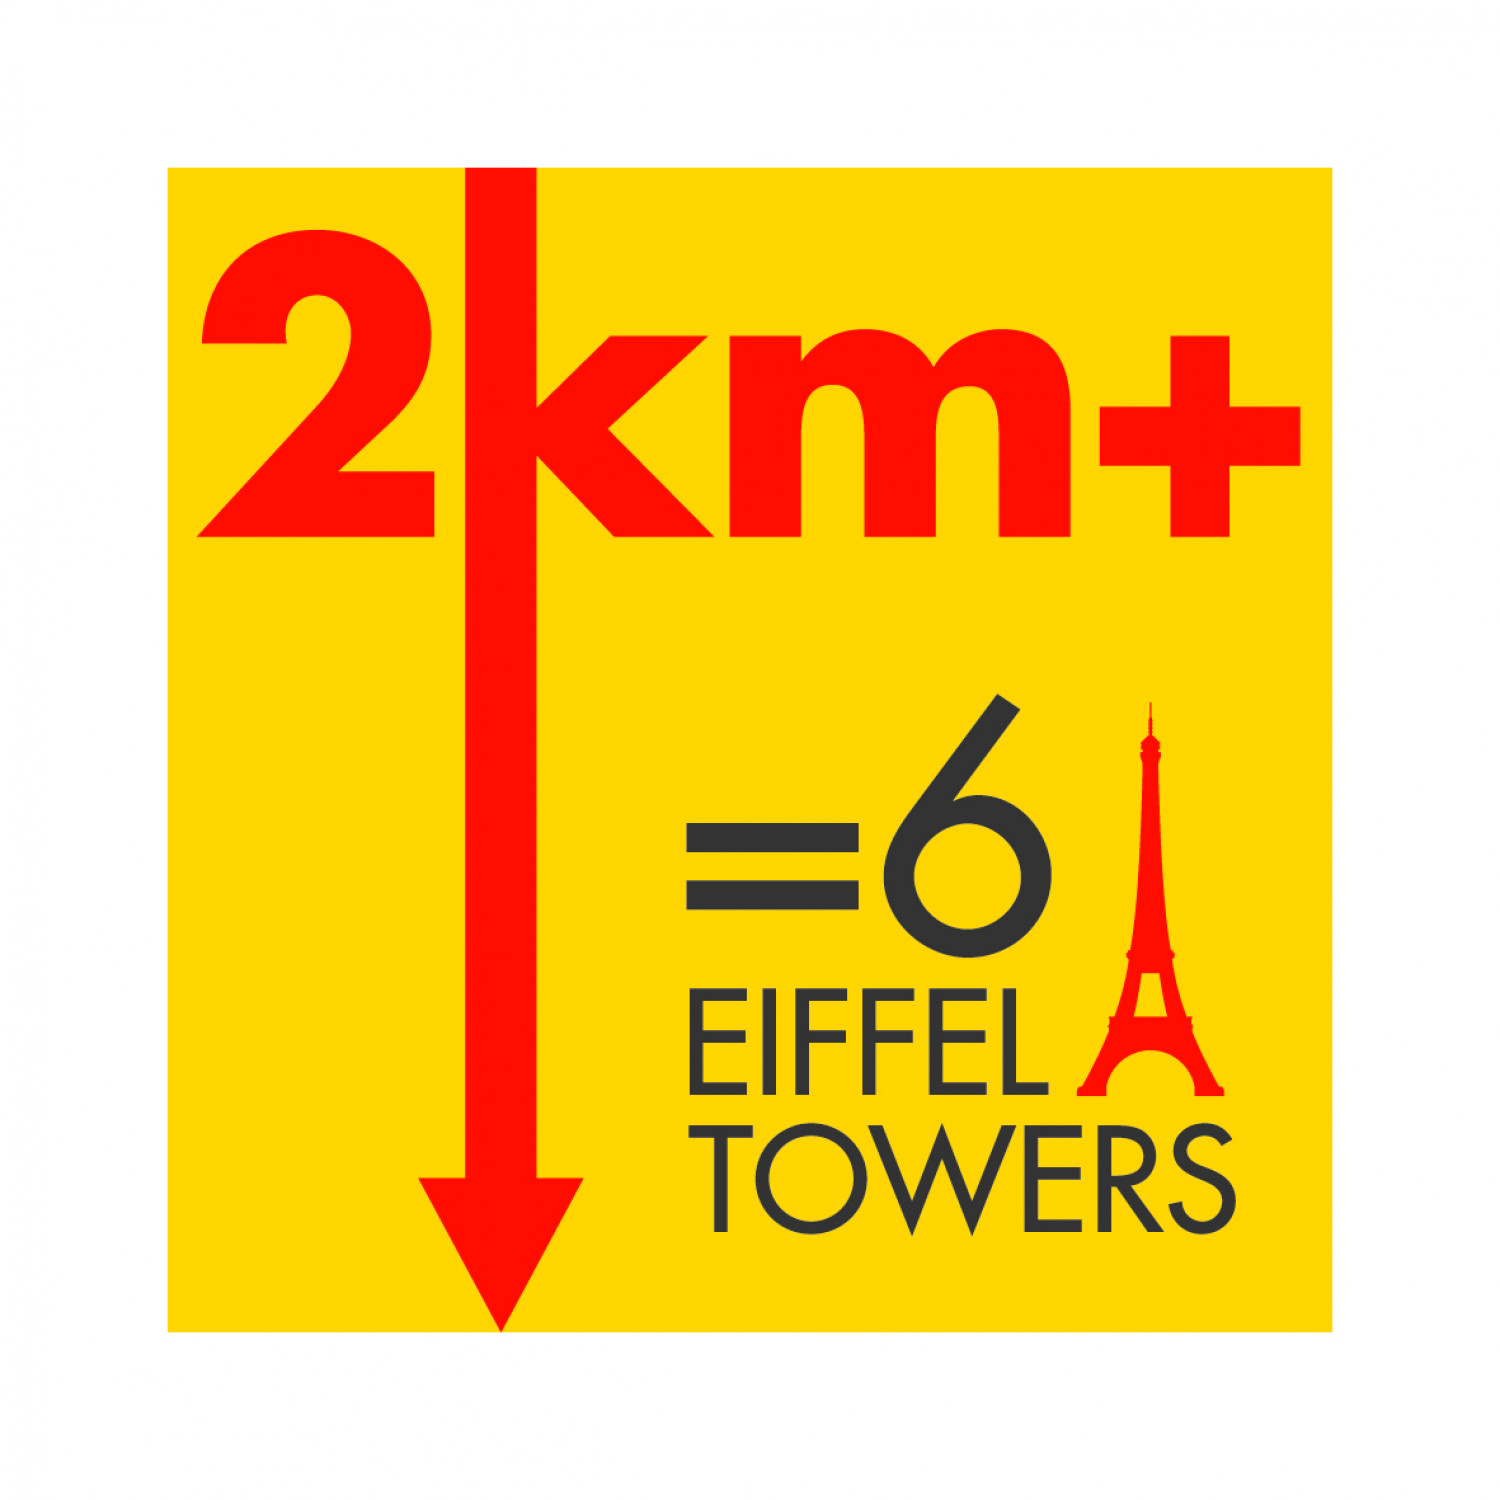 6 Eiffel Towers Infographic